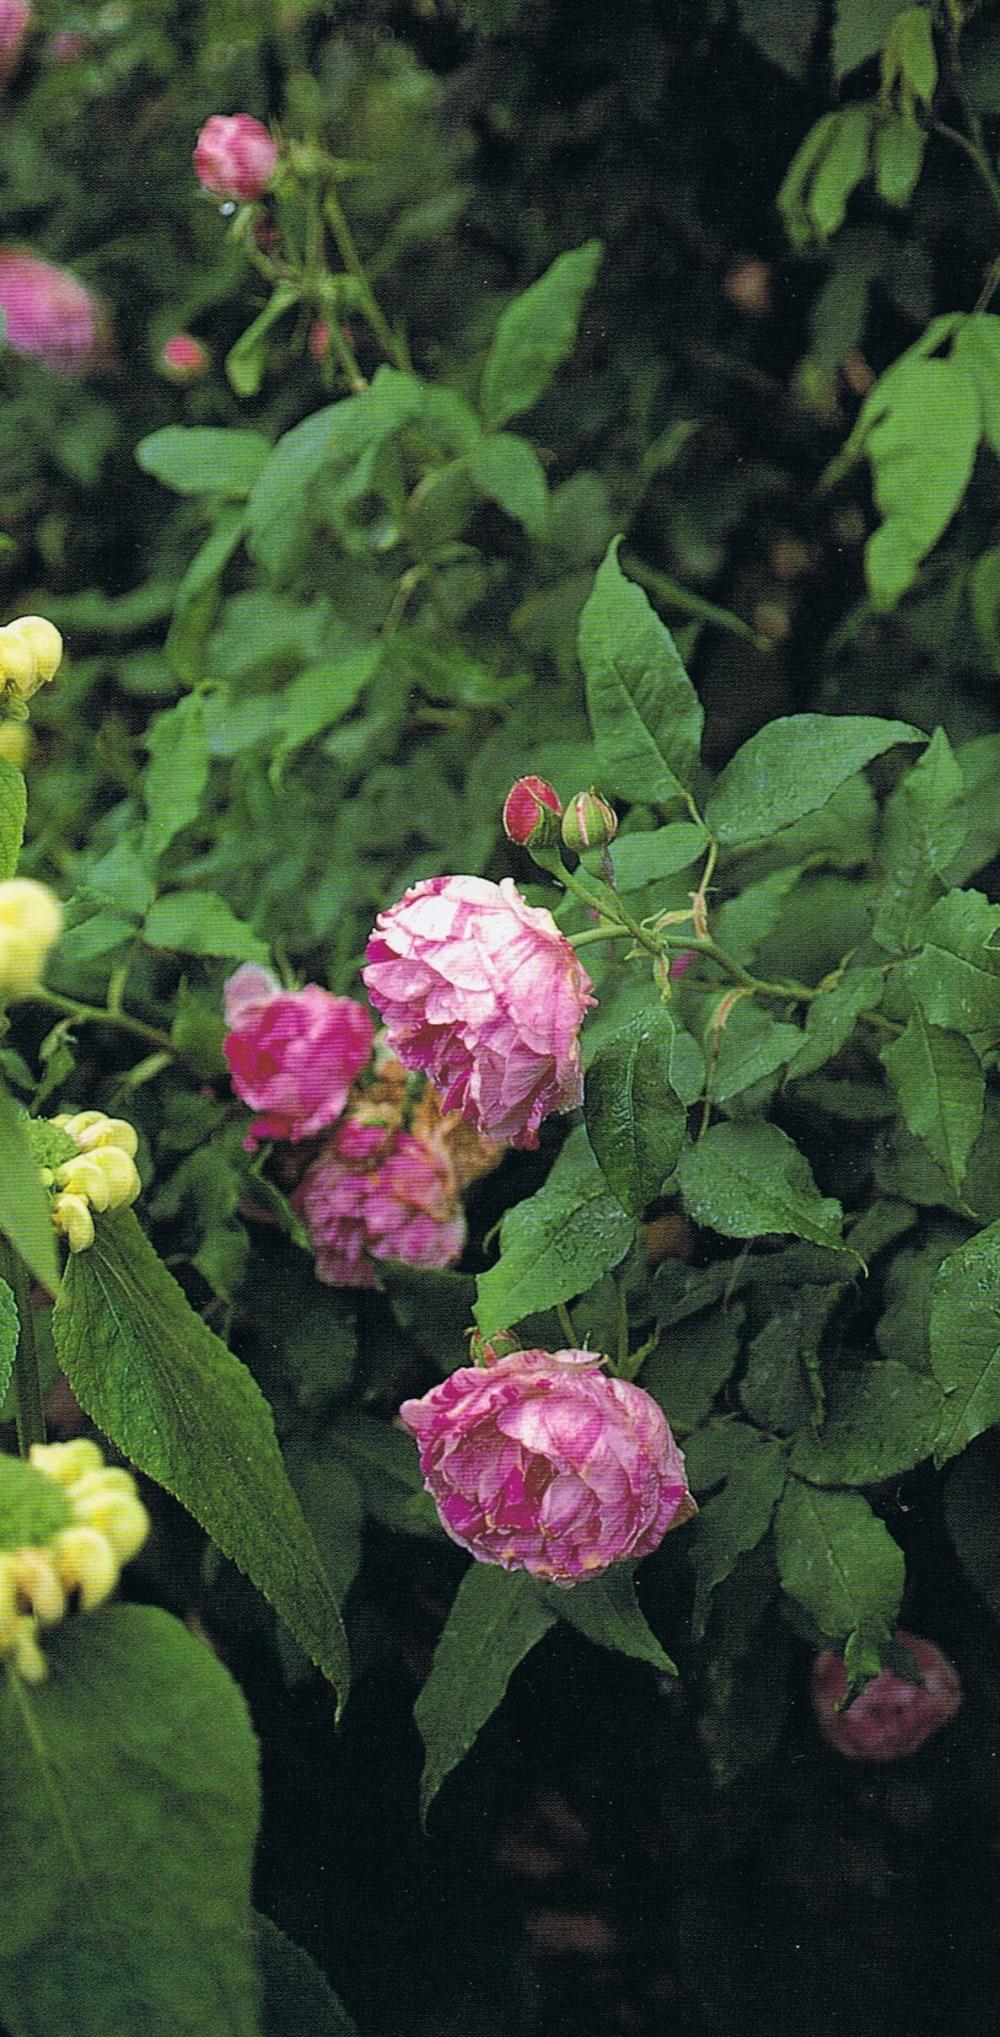 The Glory of Roses Hicote Manor striped rose 2 Phlomis samia